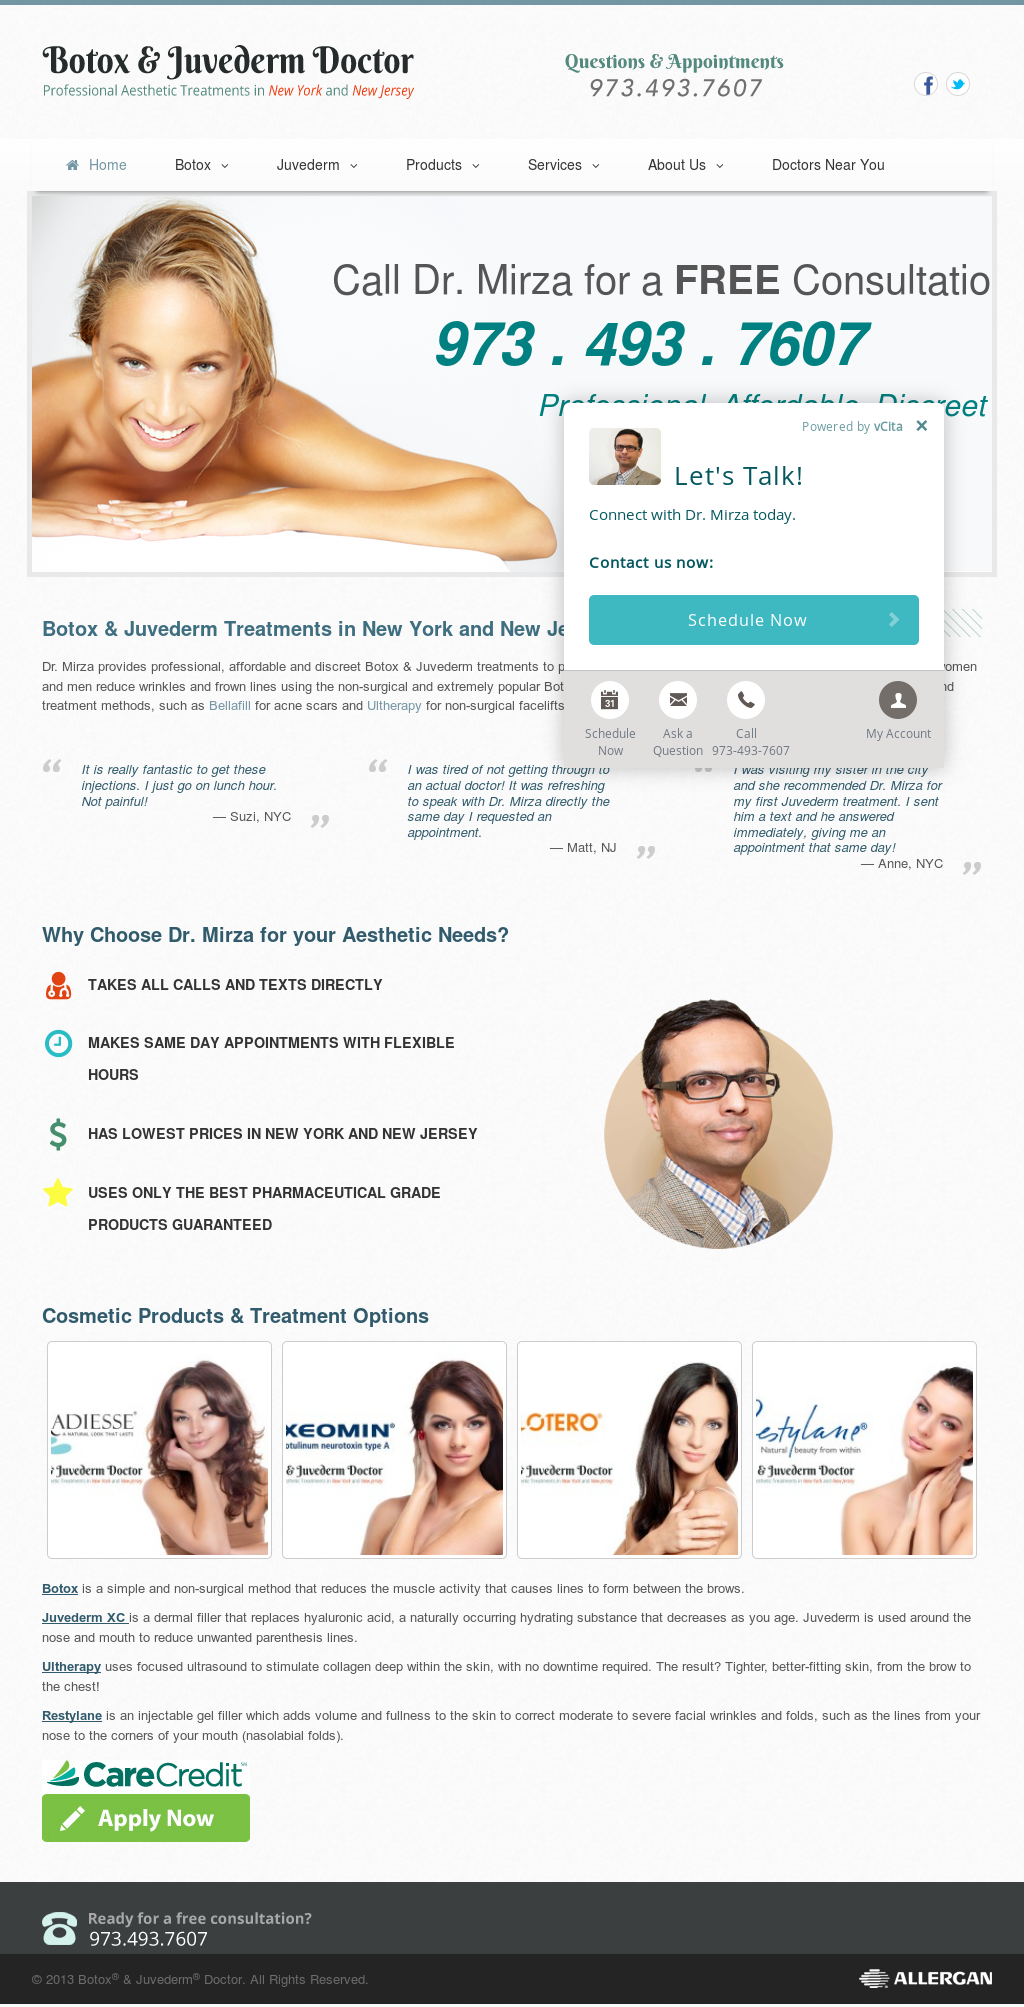 Botox Juvederm Doctor Competitors, Revenue and Employees